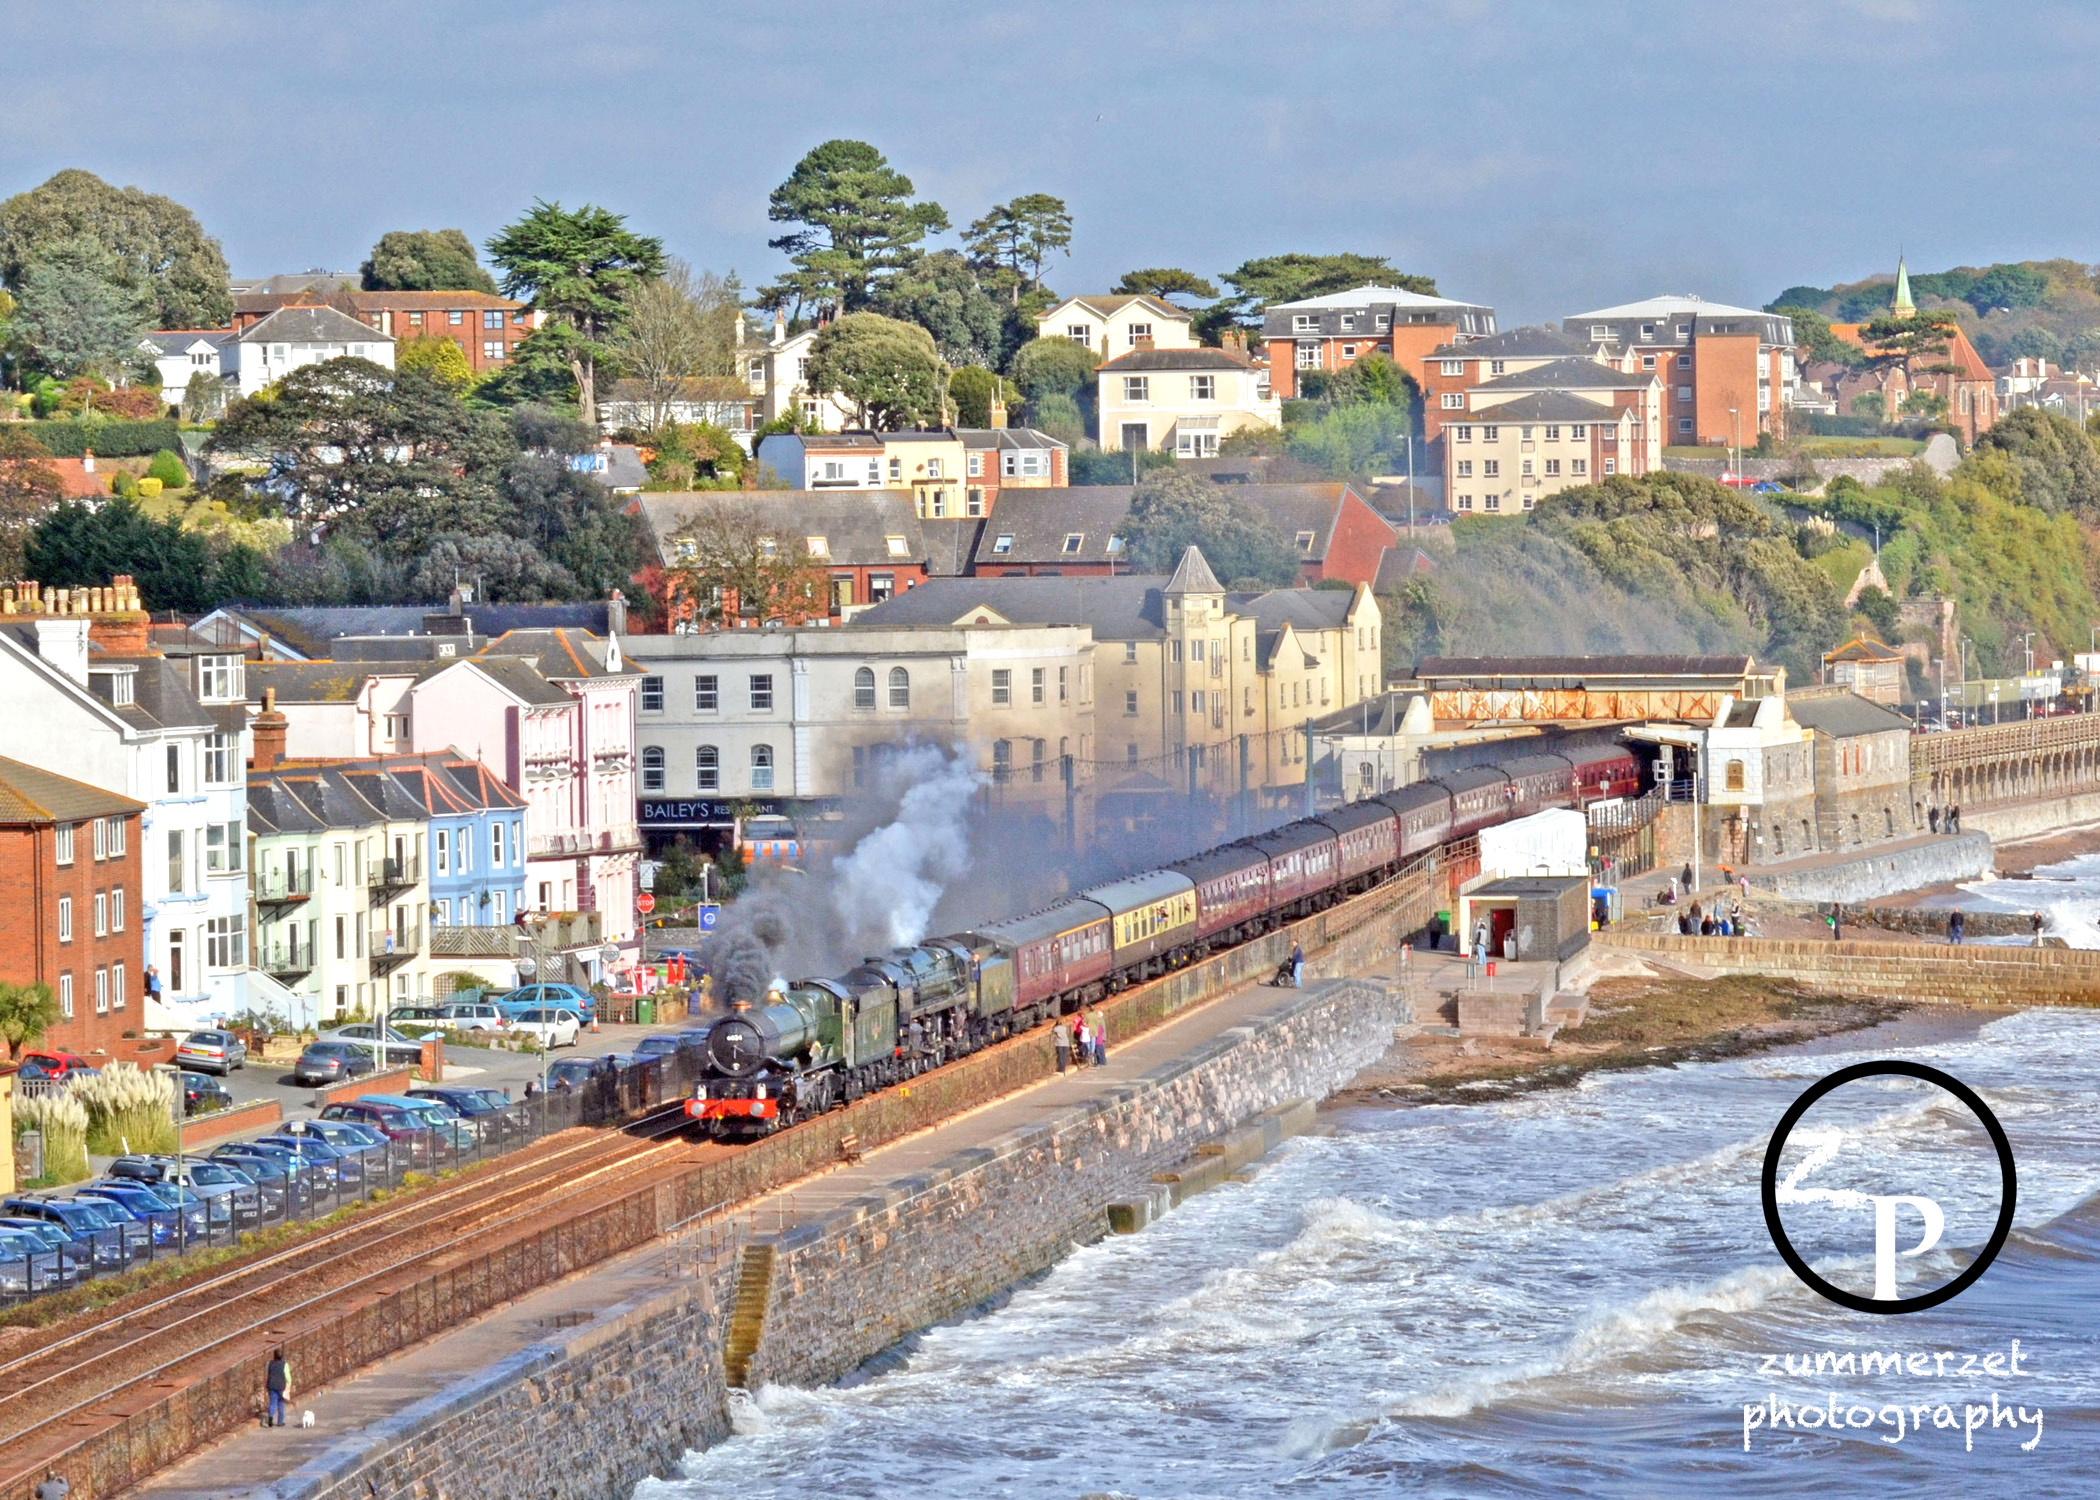 Below is a gallery of photos taken on Saturday, one was taken before ...: www.zummerzetphotography.co.uk/blog/?tag=dawlish-storms